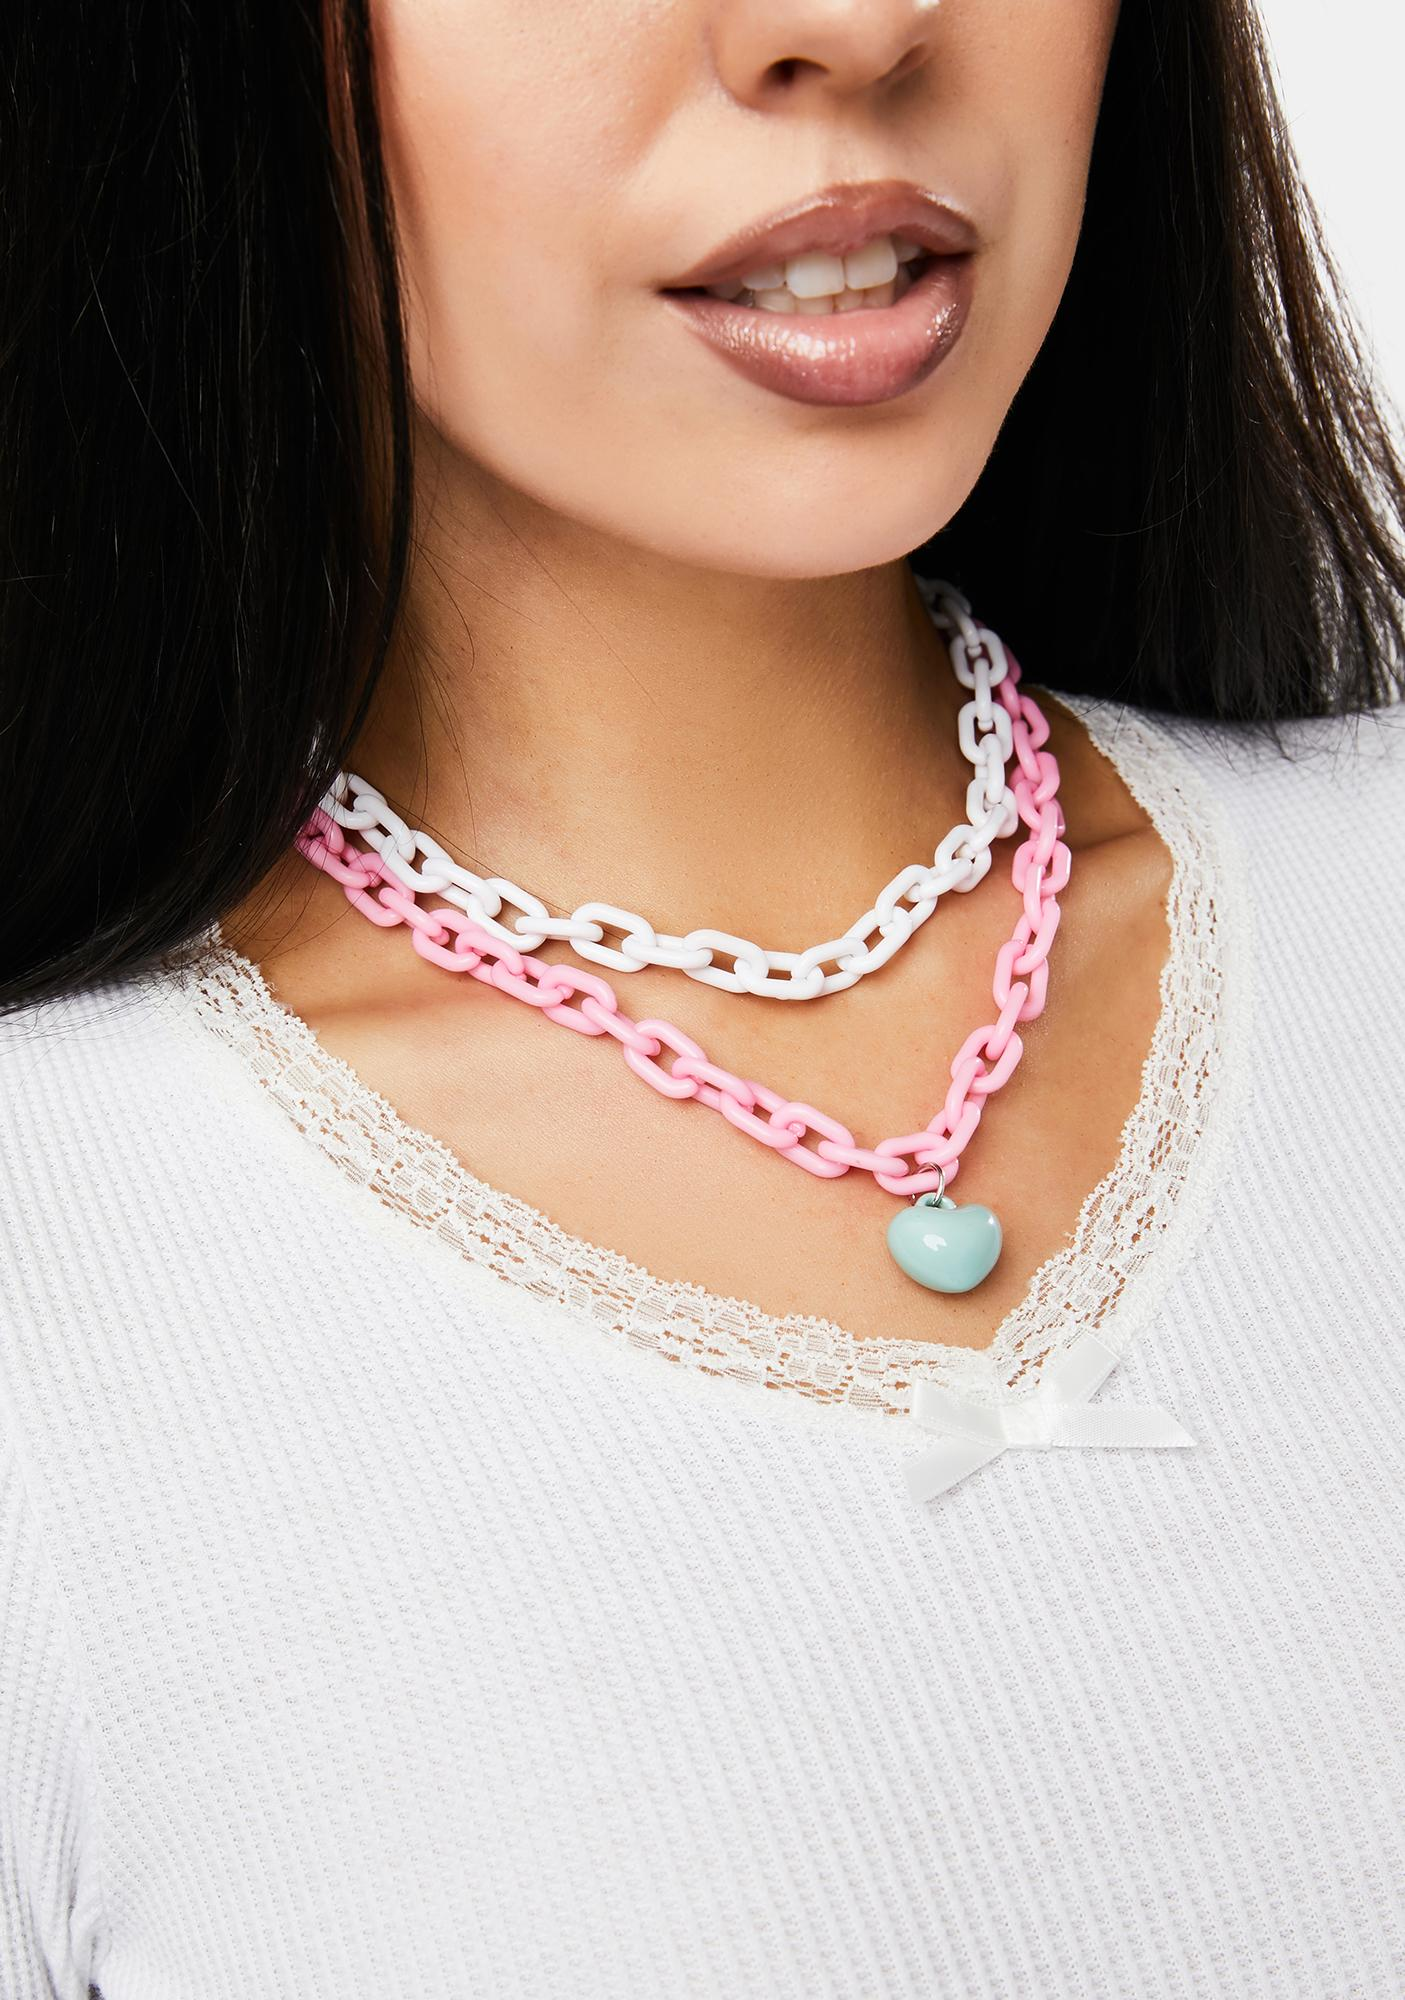 Candy Hearts Chain Necklace